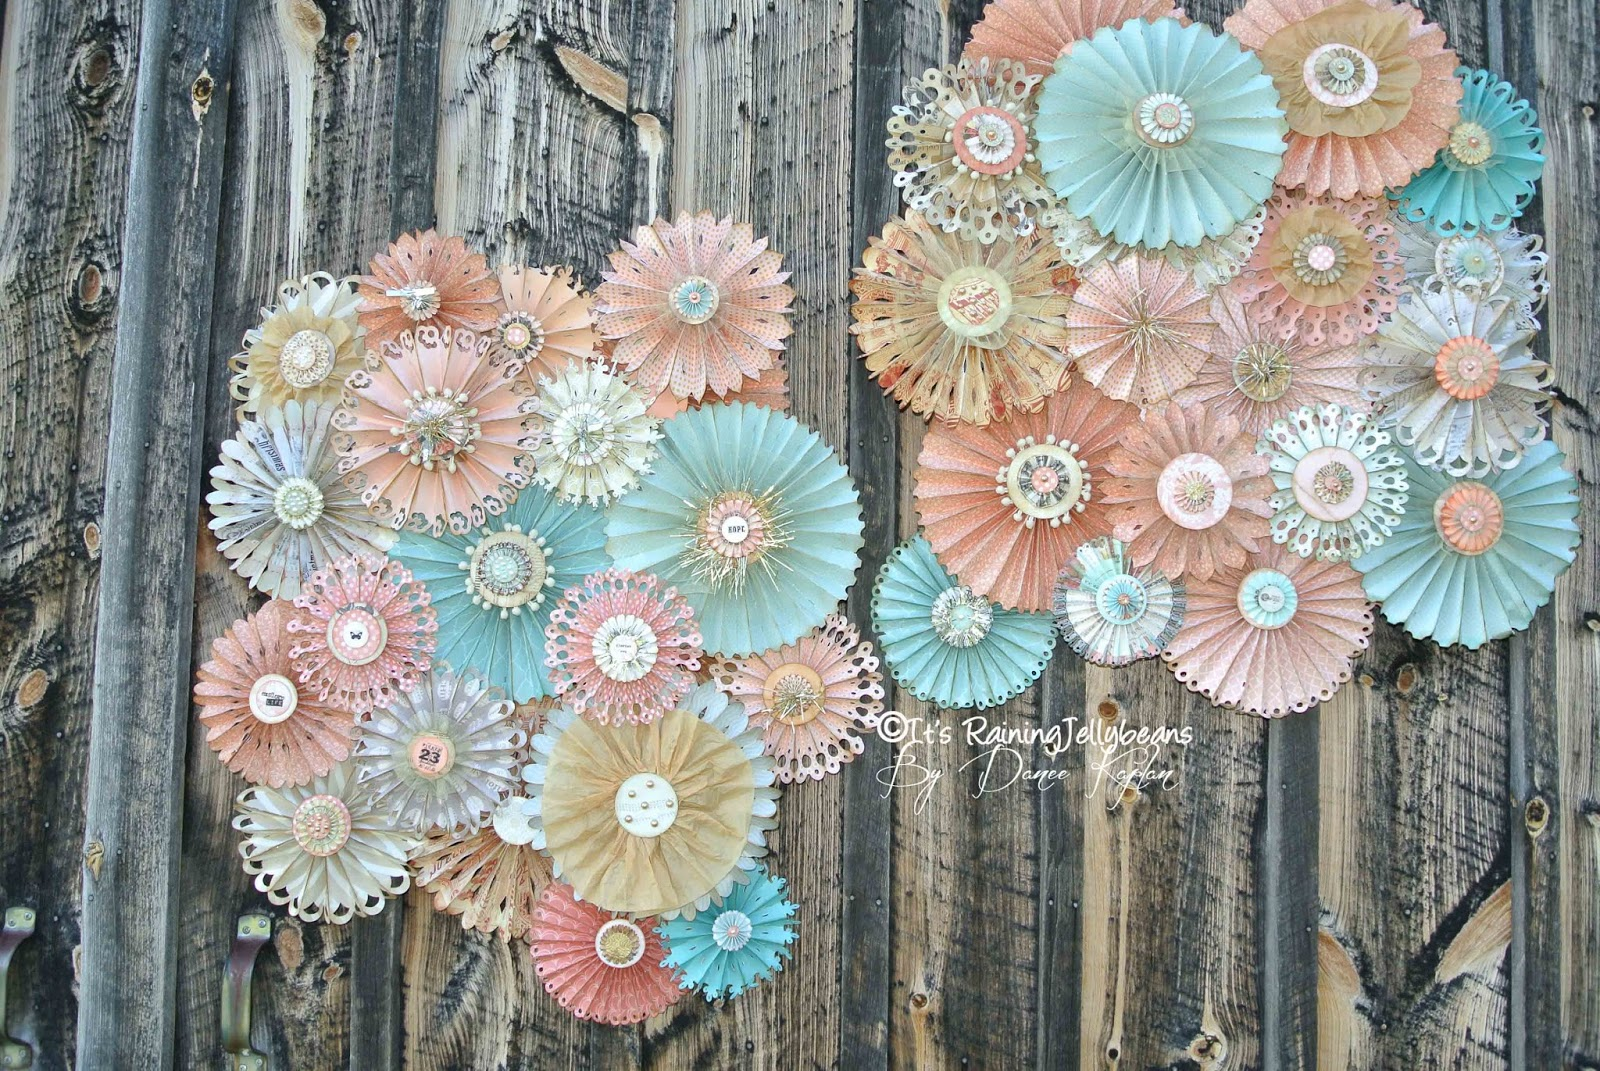 it 39 s raining jellybeans wedding rosette wall decor